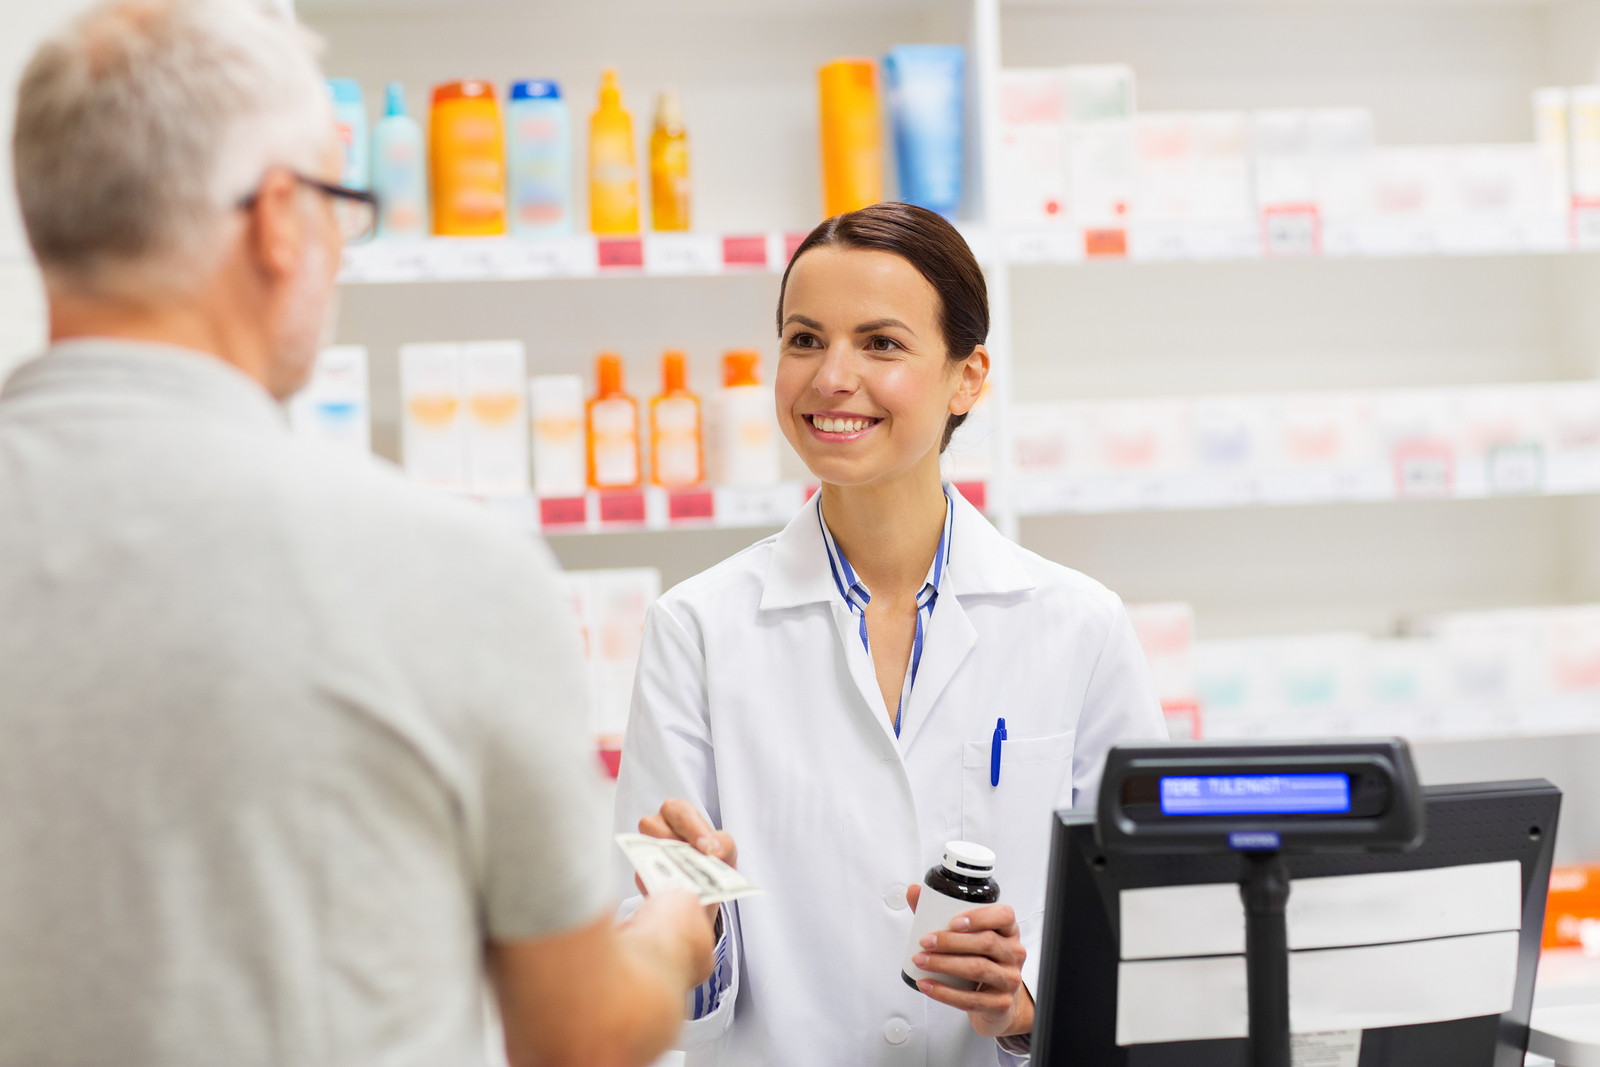 female pharmacist smiling and collecting payment from happy pharmacy customer at the checkout point of sale counter